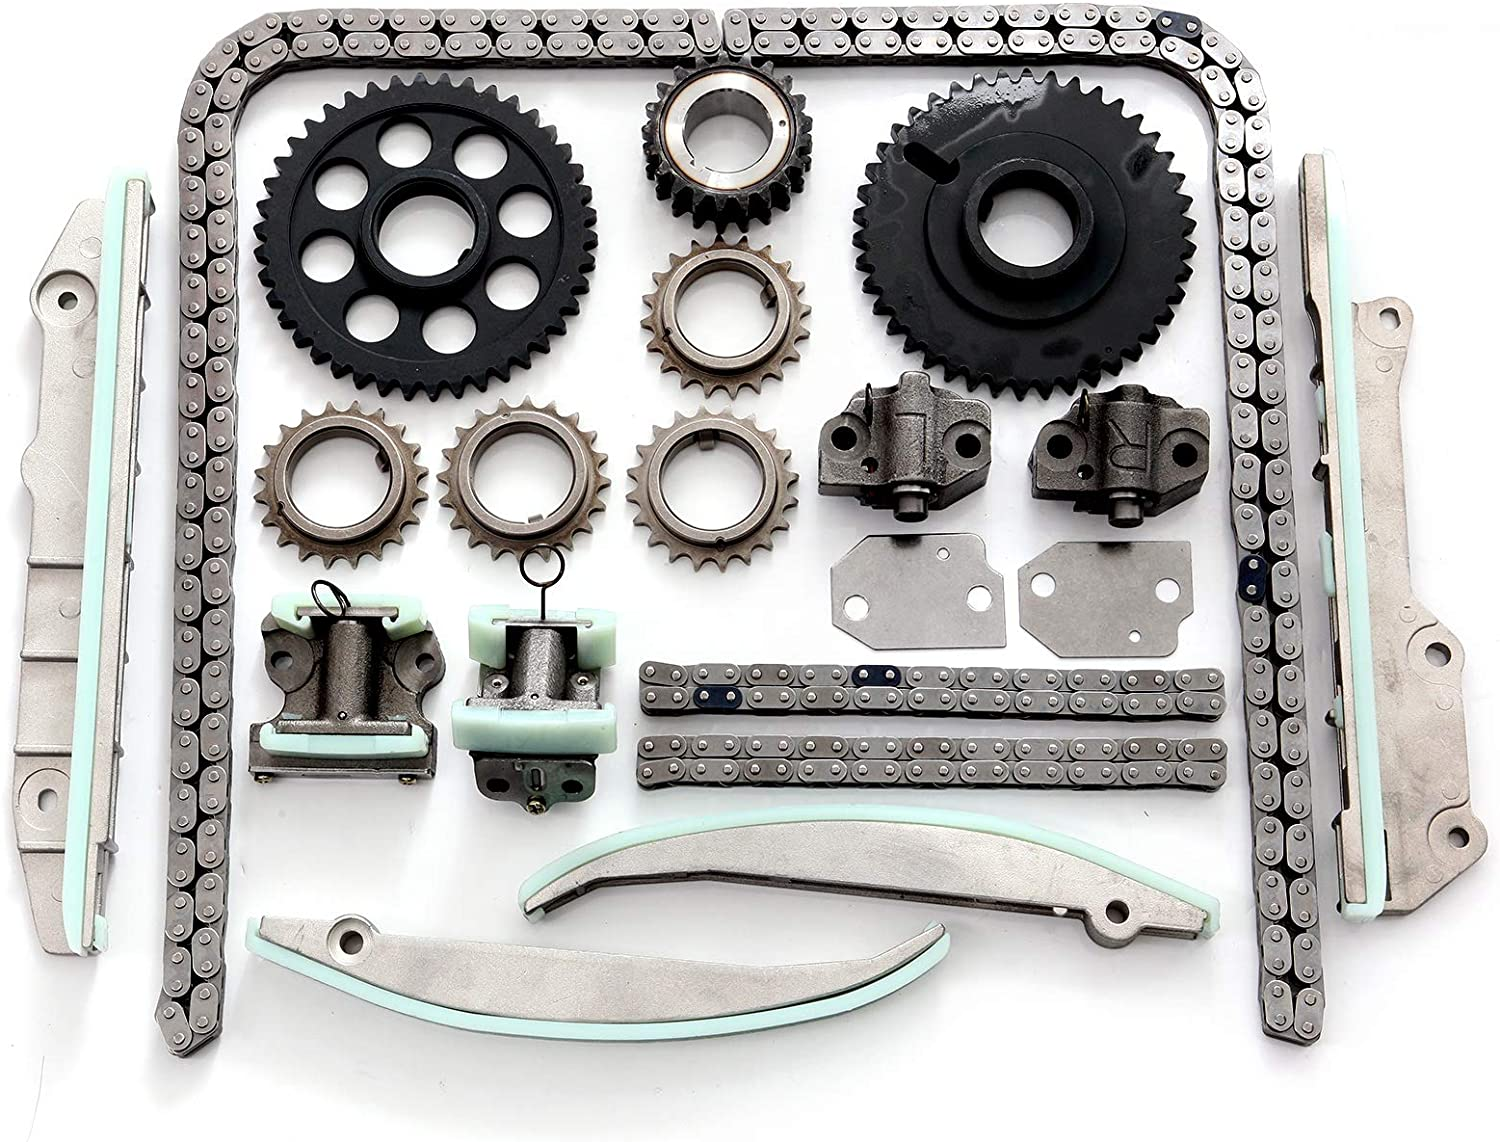 INEEDUP Timing Chain Kits Fit for 1998 Lincoln Mark VIII 4.6L 281Cu in V8 Gas DOHC Naturally Aspirated